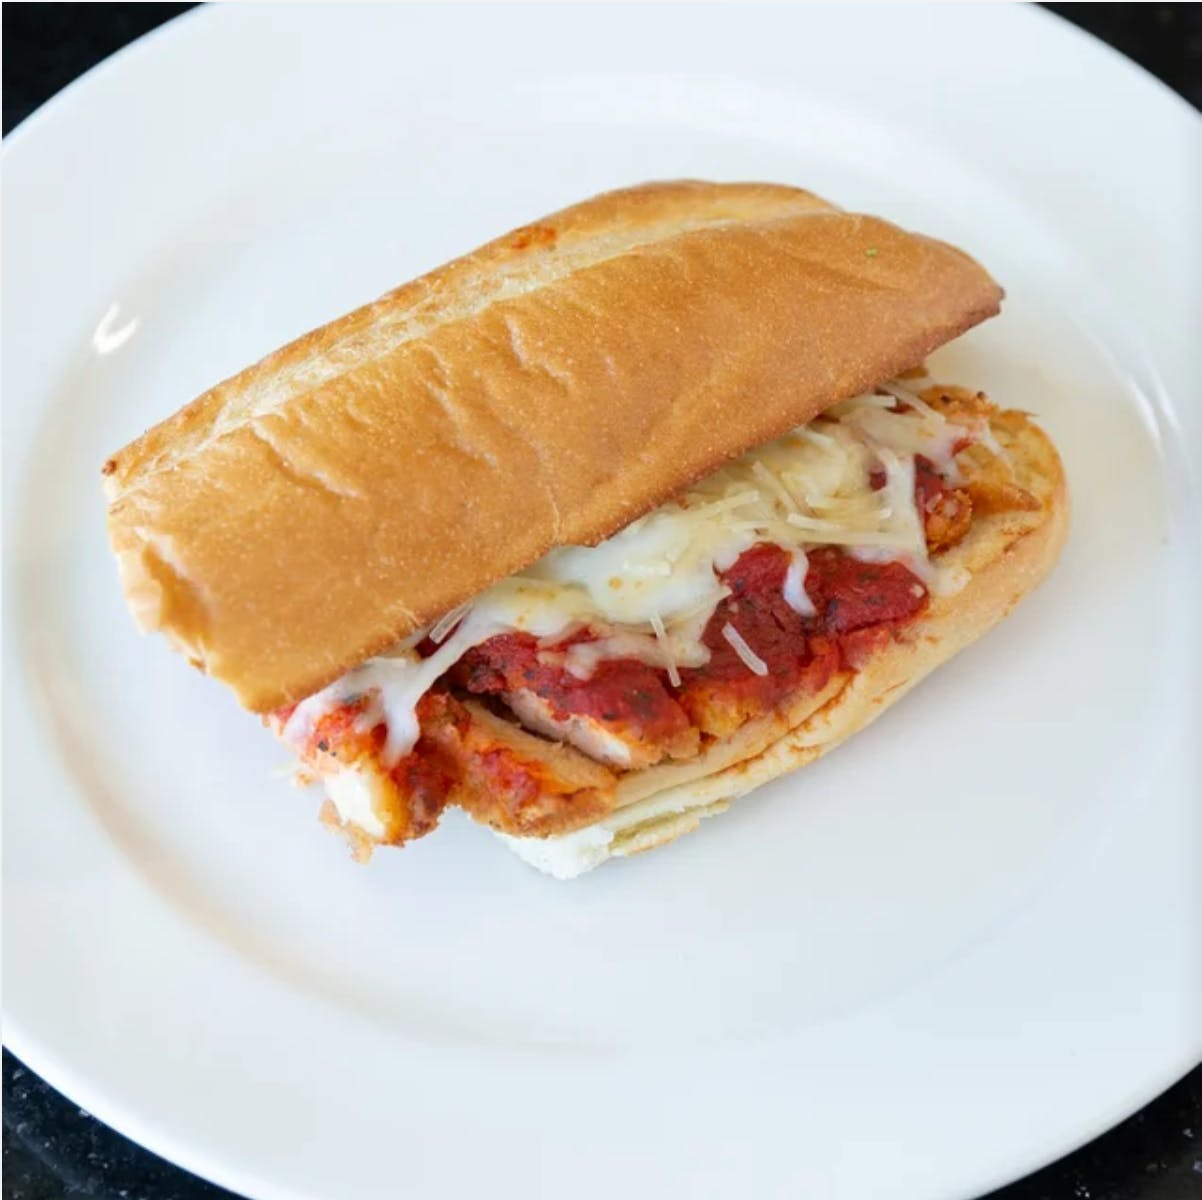 Chicken Parmesan Sub from Aroma Pizza & Pasta in Lake Forest, CA